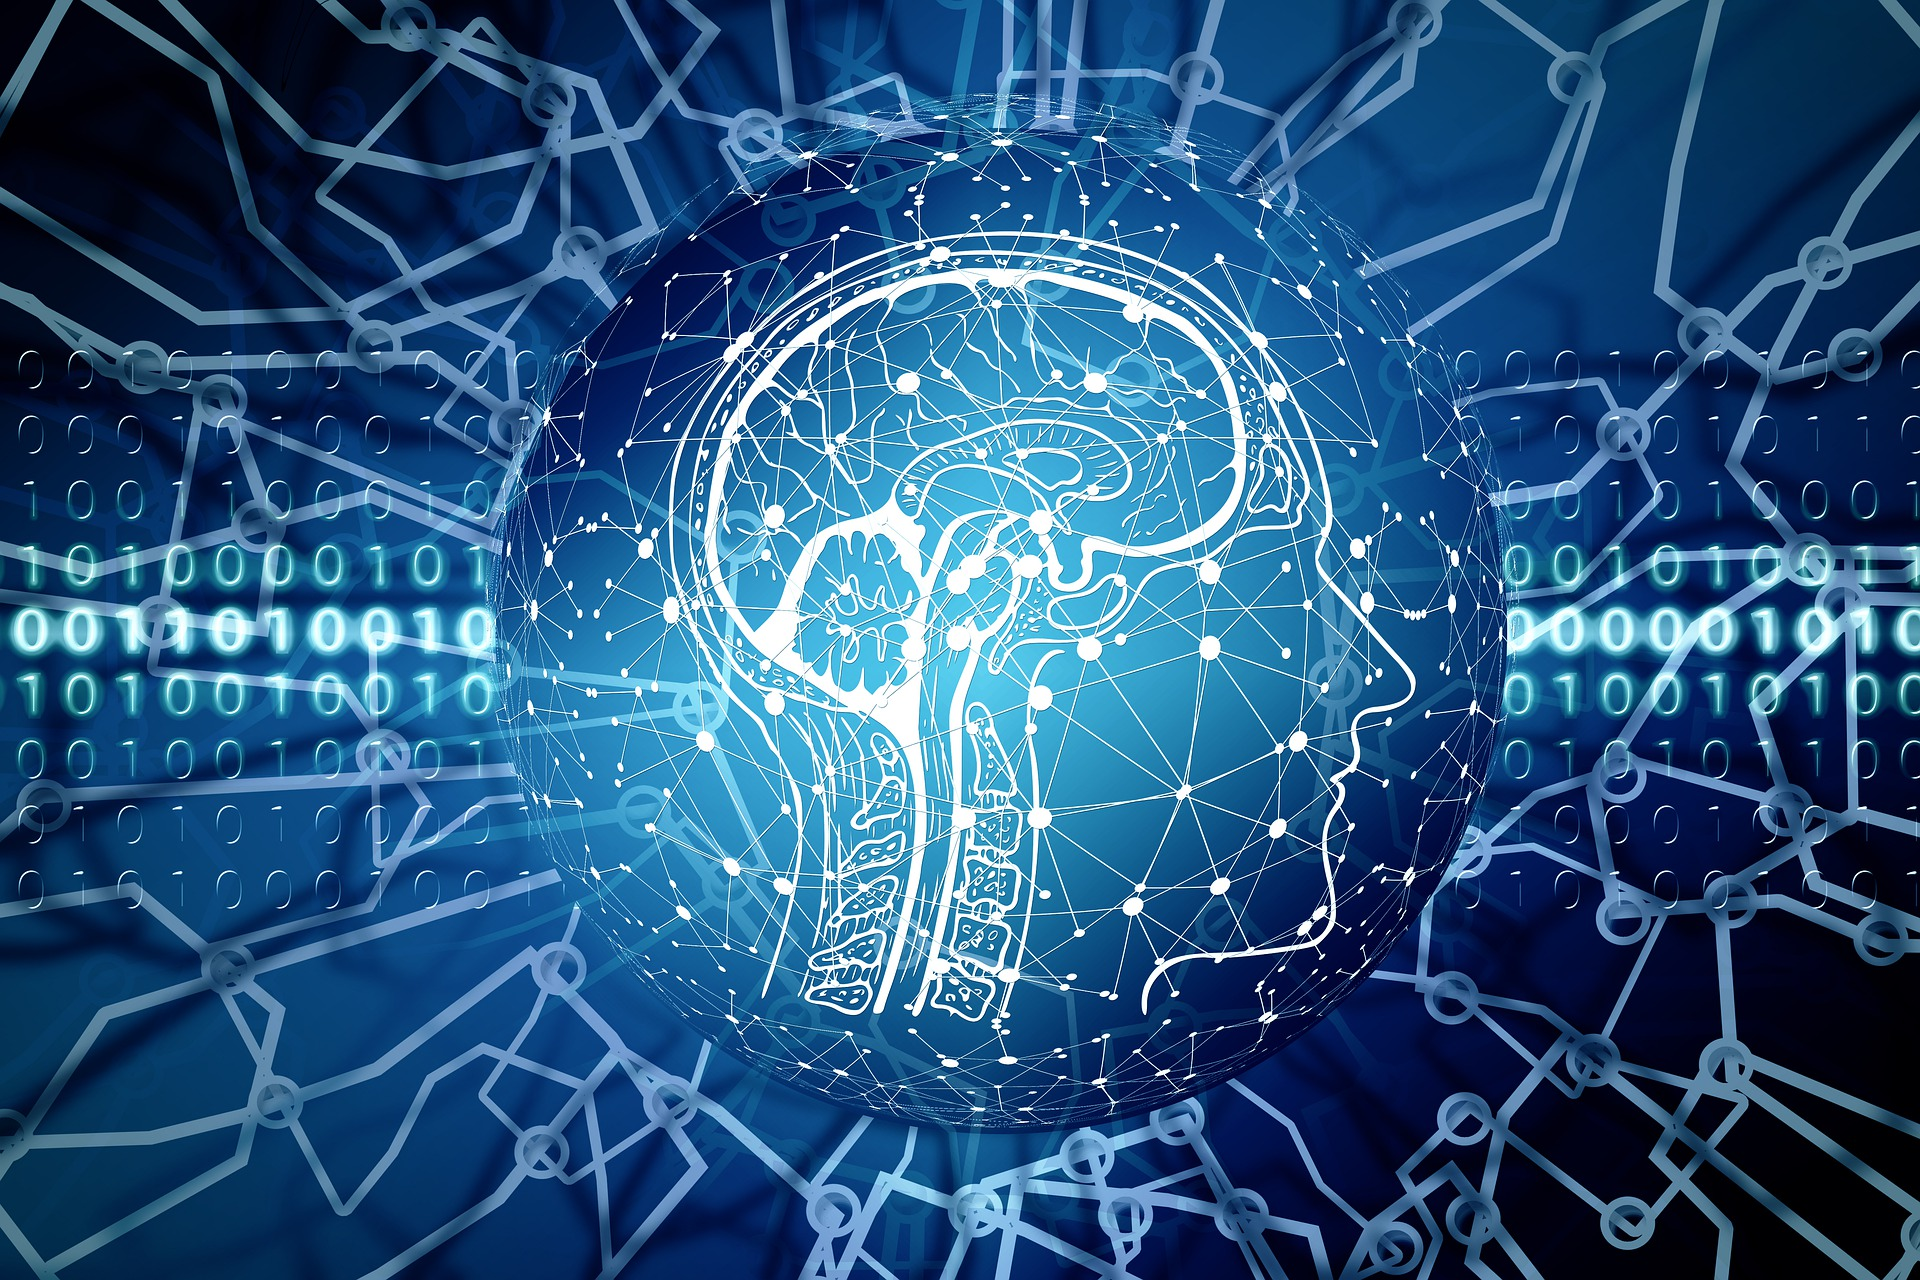 abstract image of a human head with interconnections and binary background representing artificial intelligence